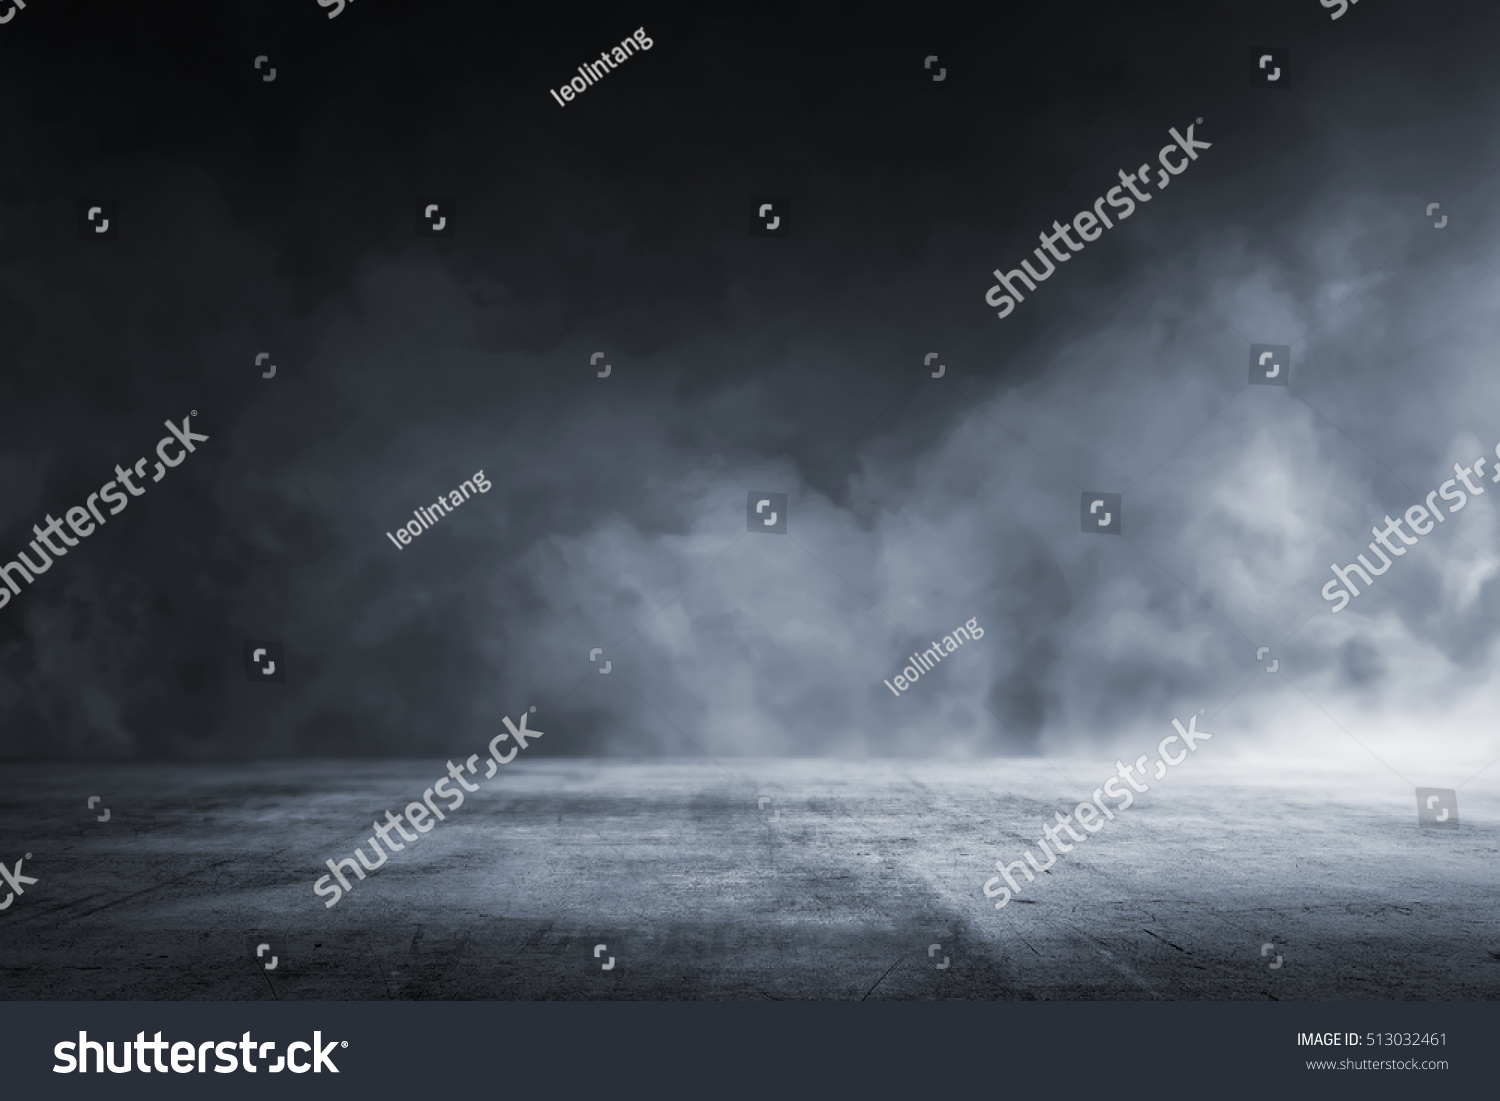 Texture dark concrete floor with mist or fog